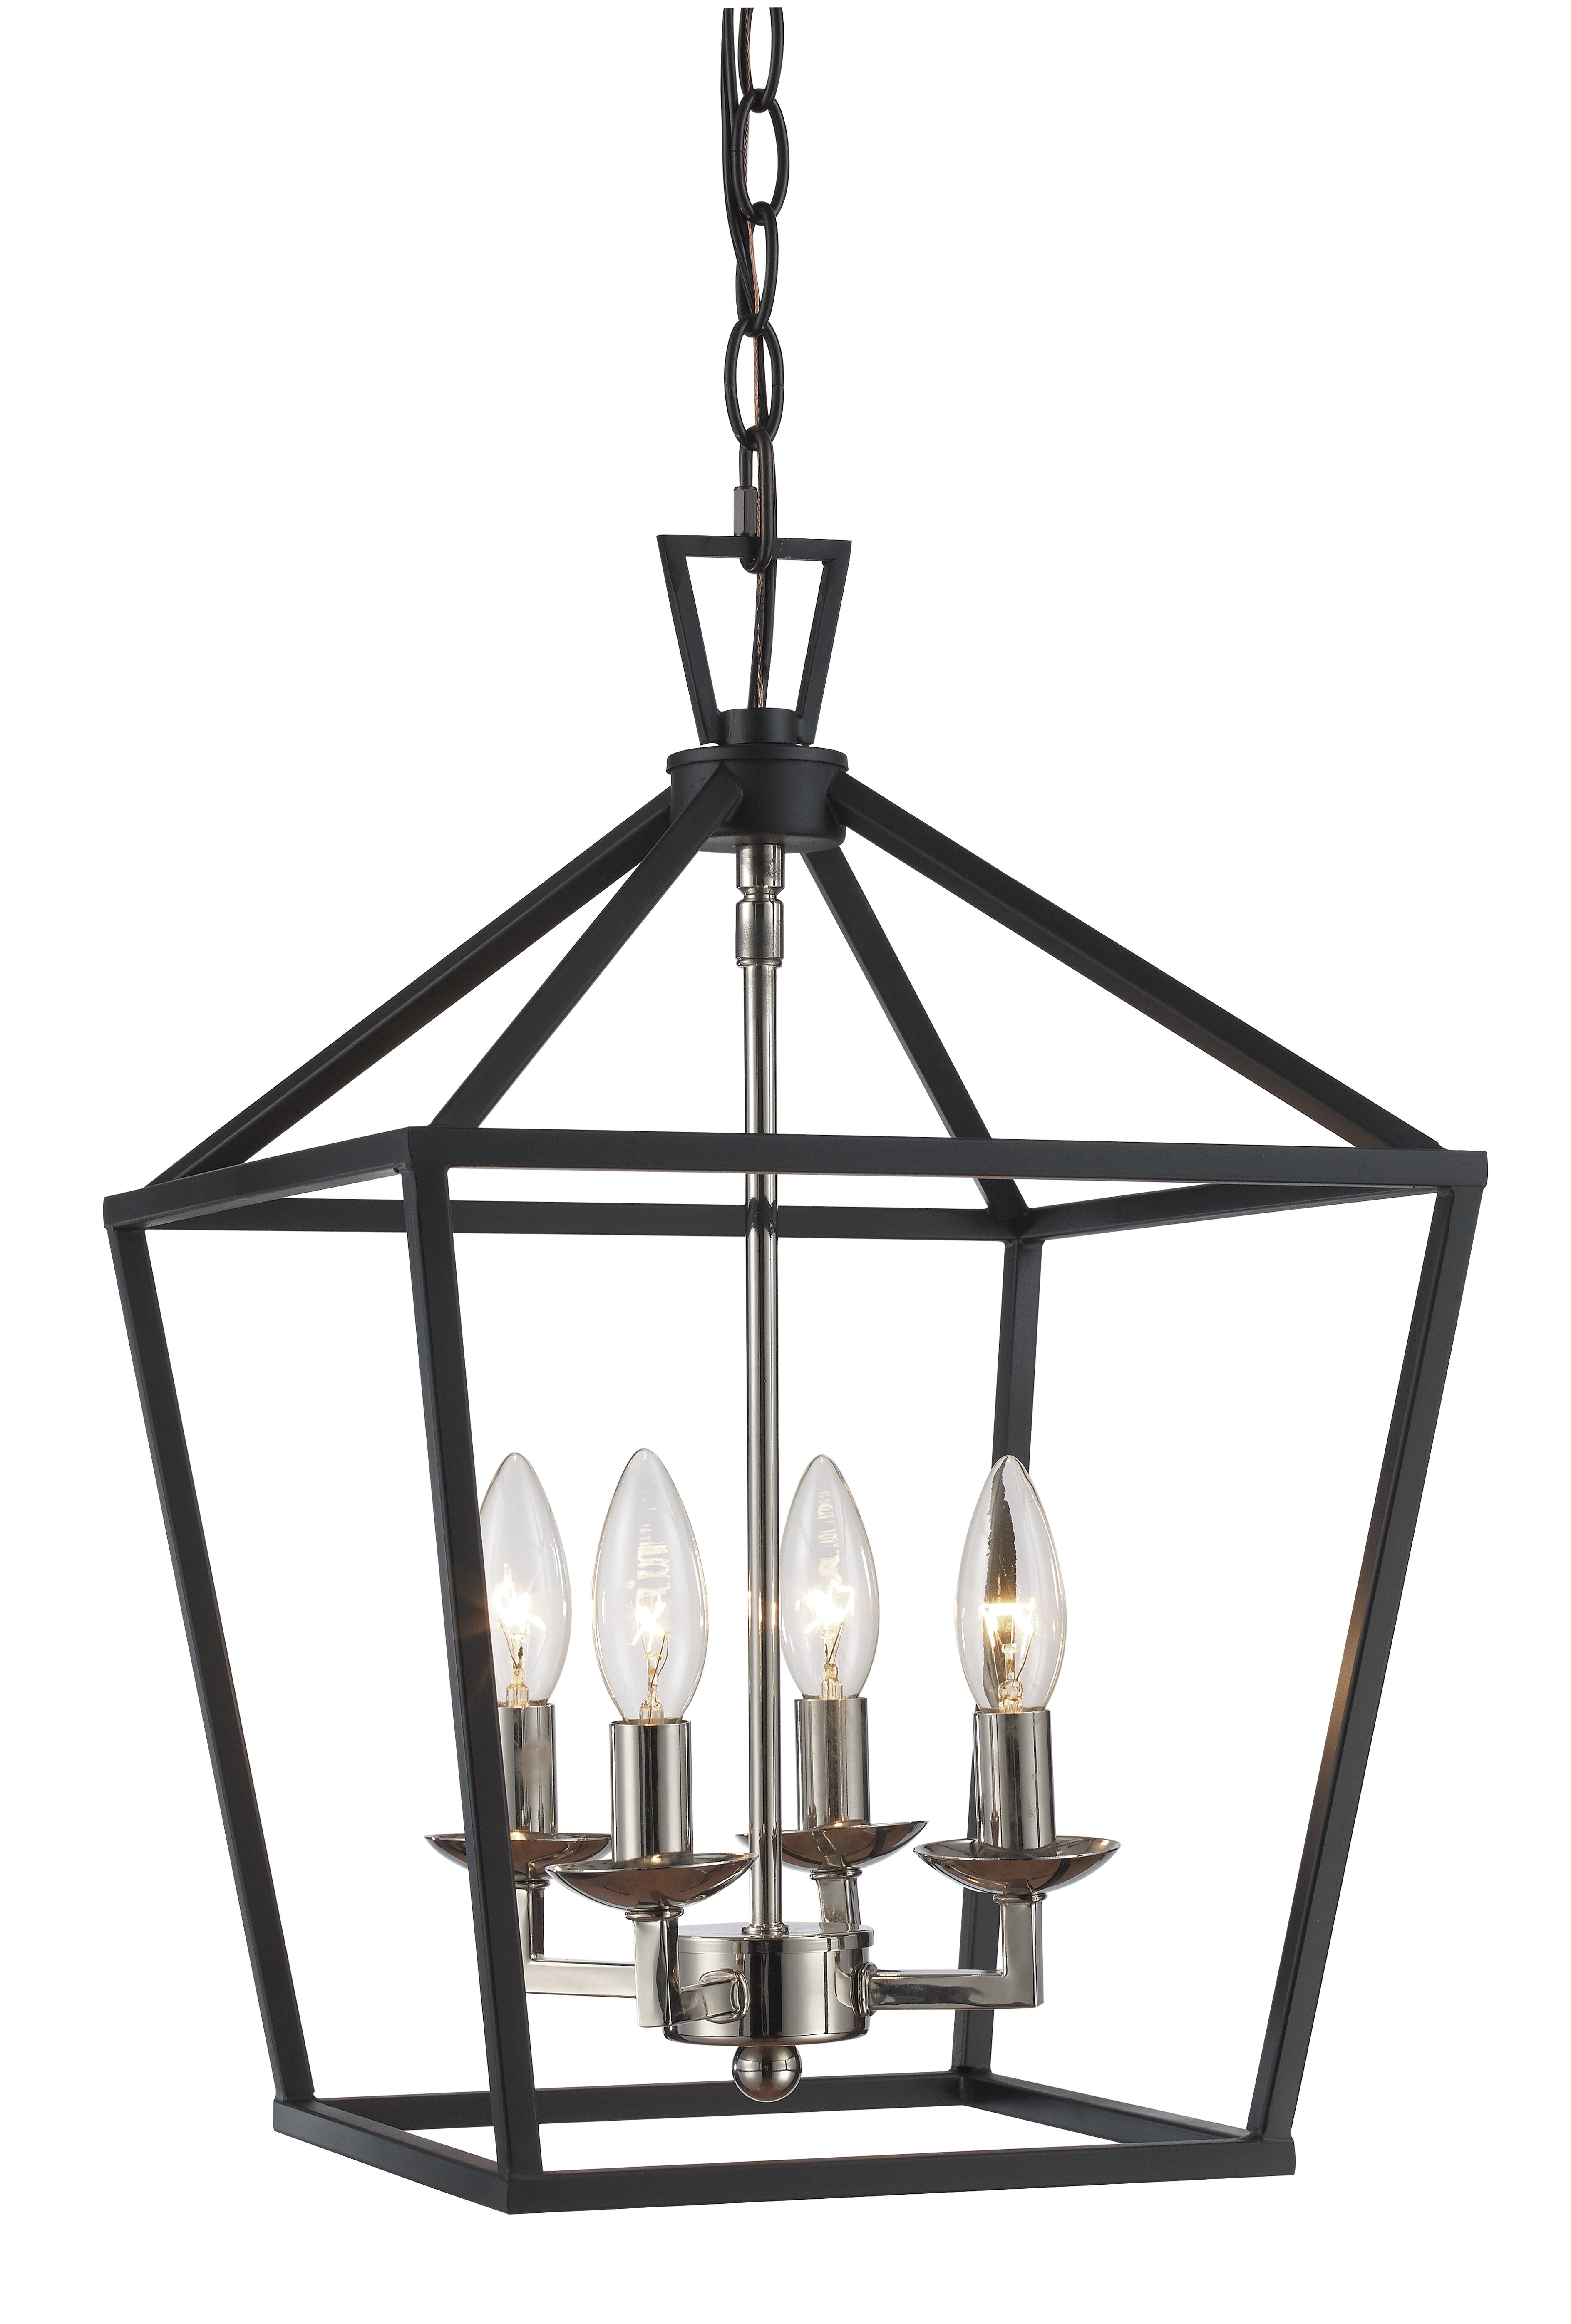 Taya 4 Light Lantern Square Pendants With Widely Used Laurel Foundry Modern Farmhouse Carmen 4 Light Lantern Geometric Pendant (View 20 of 20)